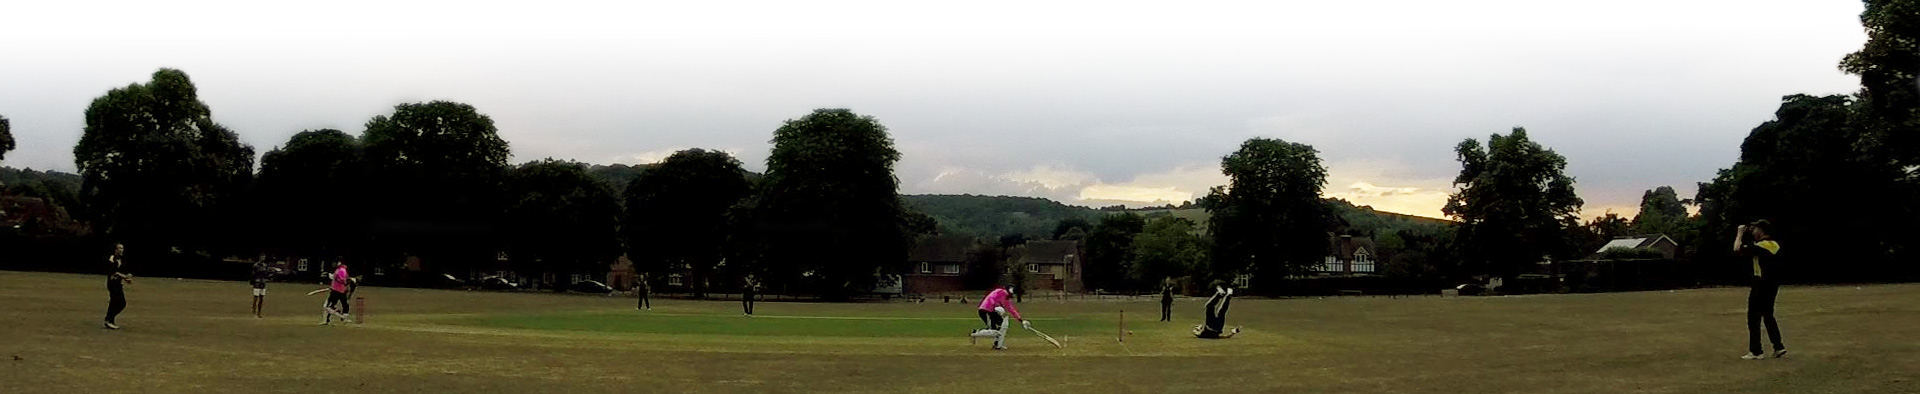 Goring Cricket Club